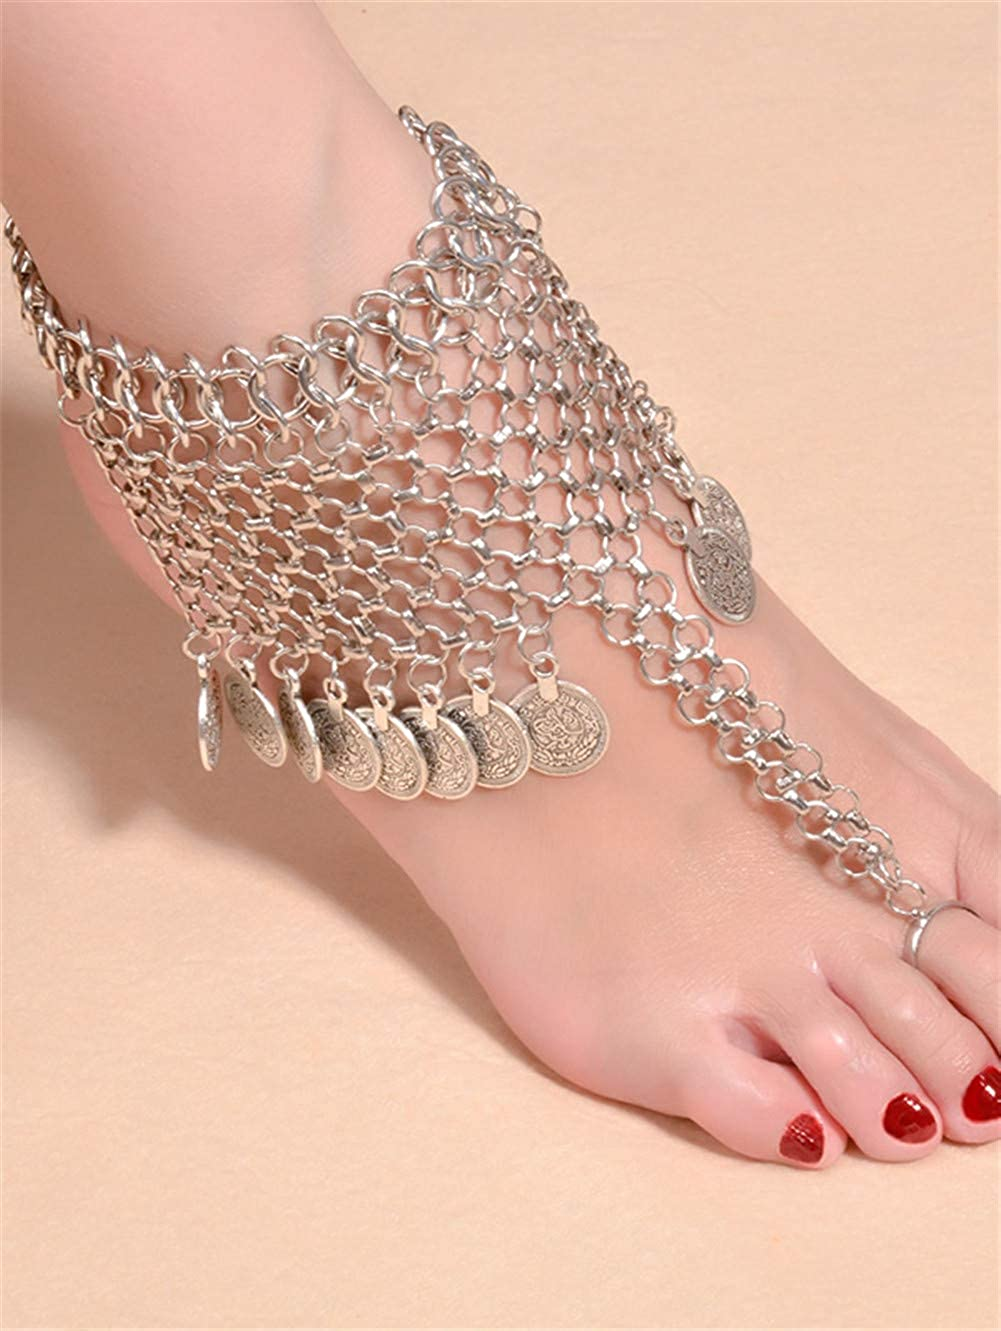 Retro Exaggeration Folk Leisure Yoga Coins Beach Tassels Anklets Foot Chain for Women MeniaMeow Alloy Mesh Coin Fringed Boho Belly Dance Anklet